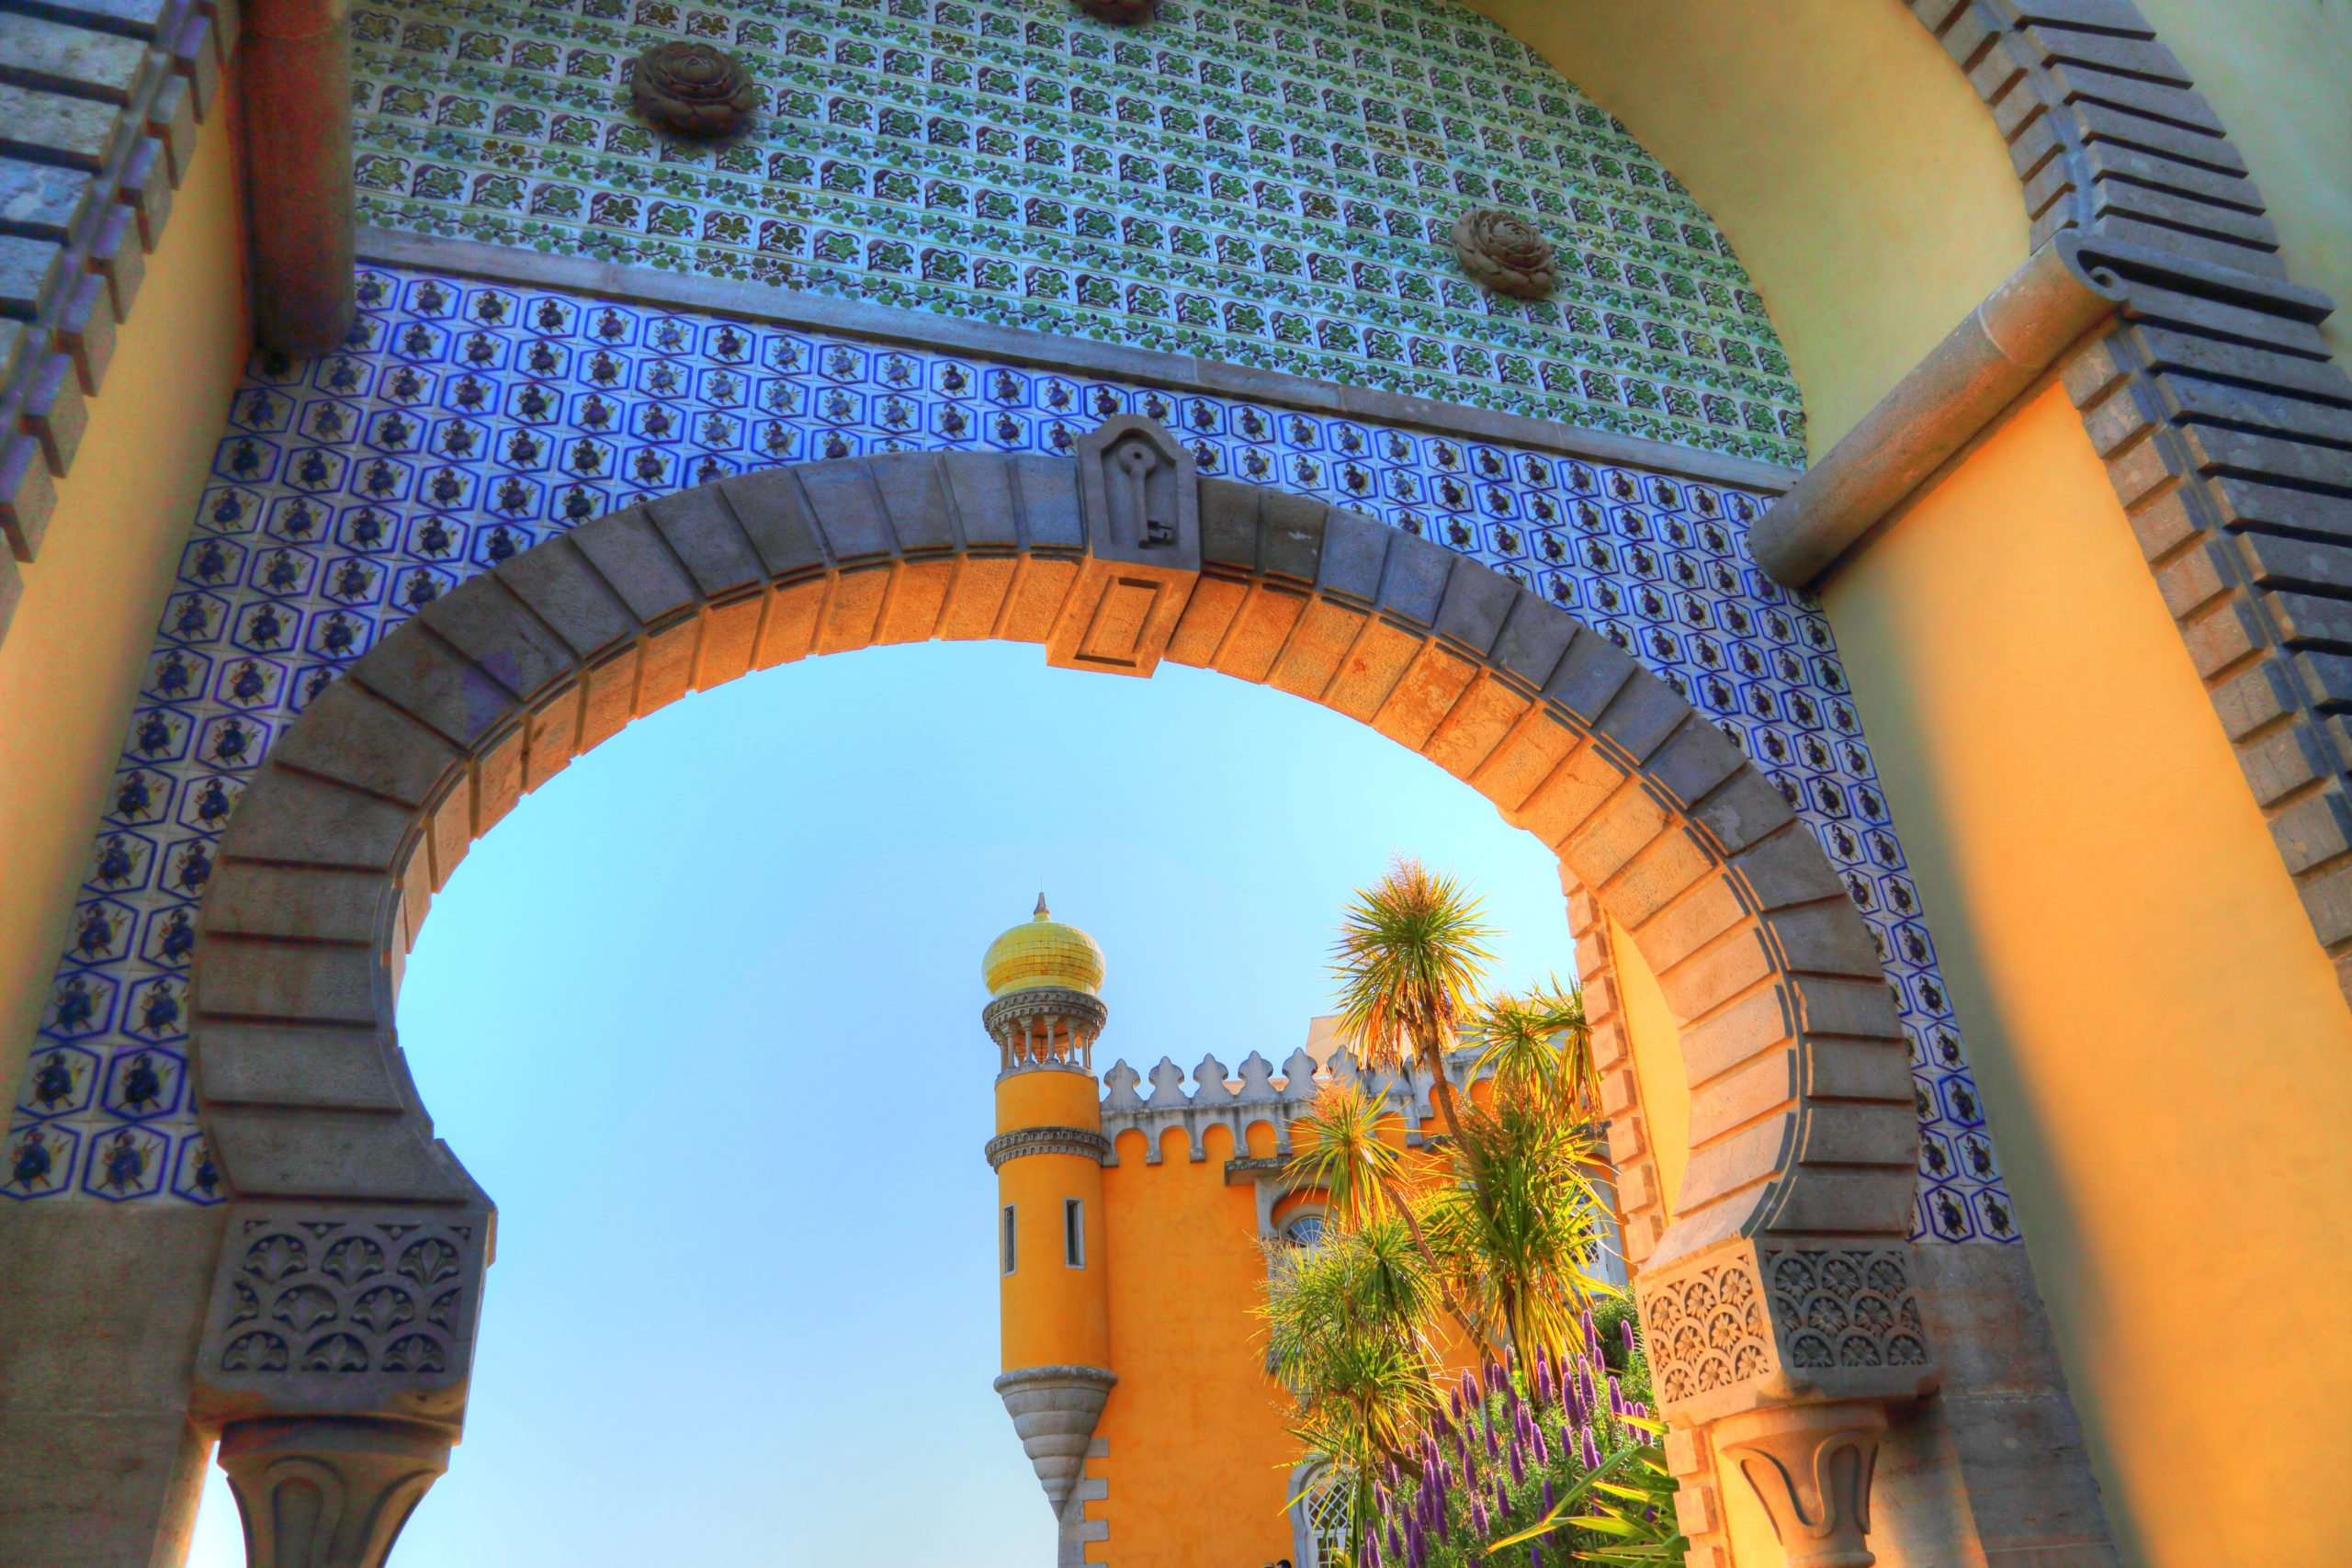 Admire The Architectural Facades Of The National Palace On The Sintra Half Day Tour From Lisbon